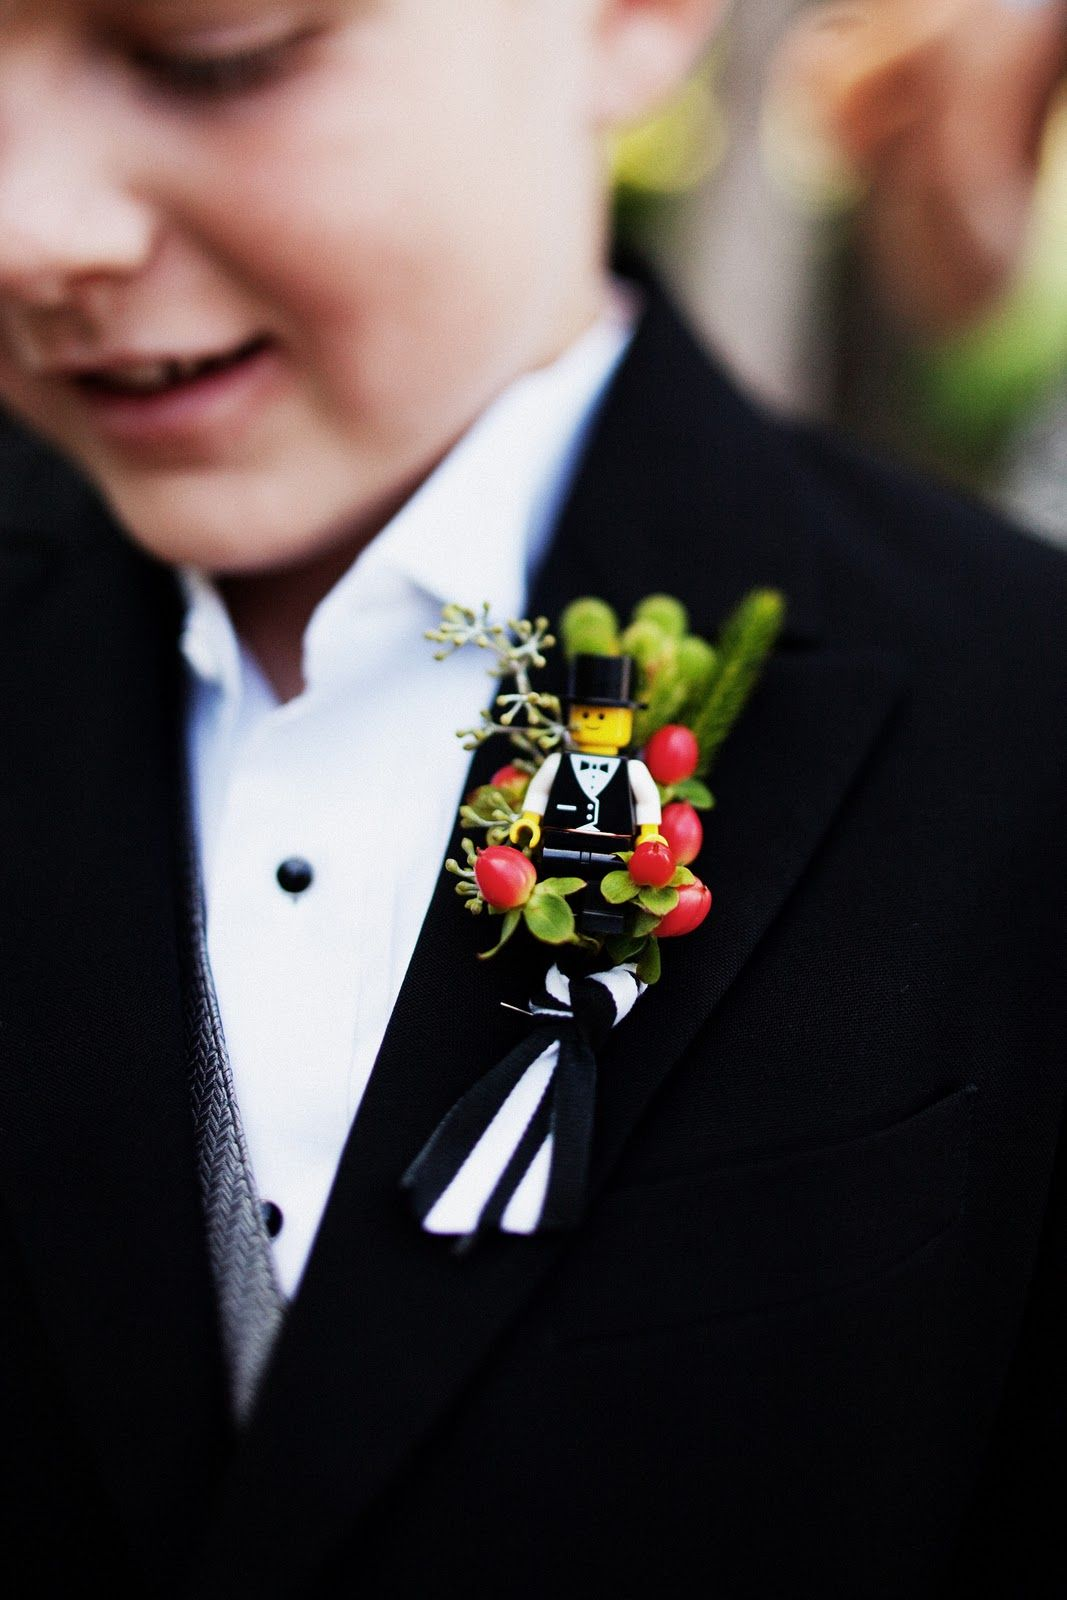 Lego Ring Bearer Boutonniere Oh Now That Is Unexpectedly Cute